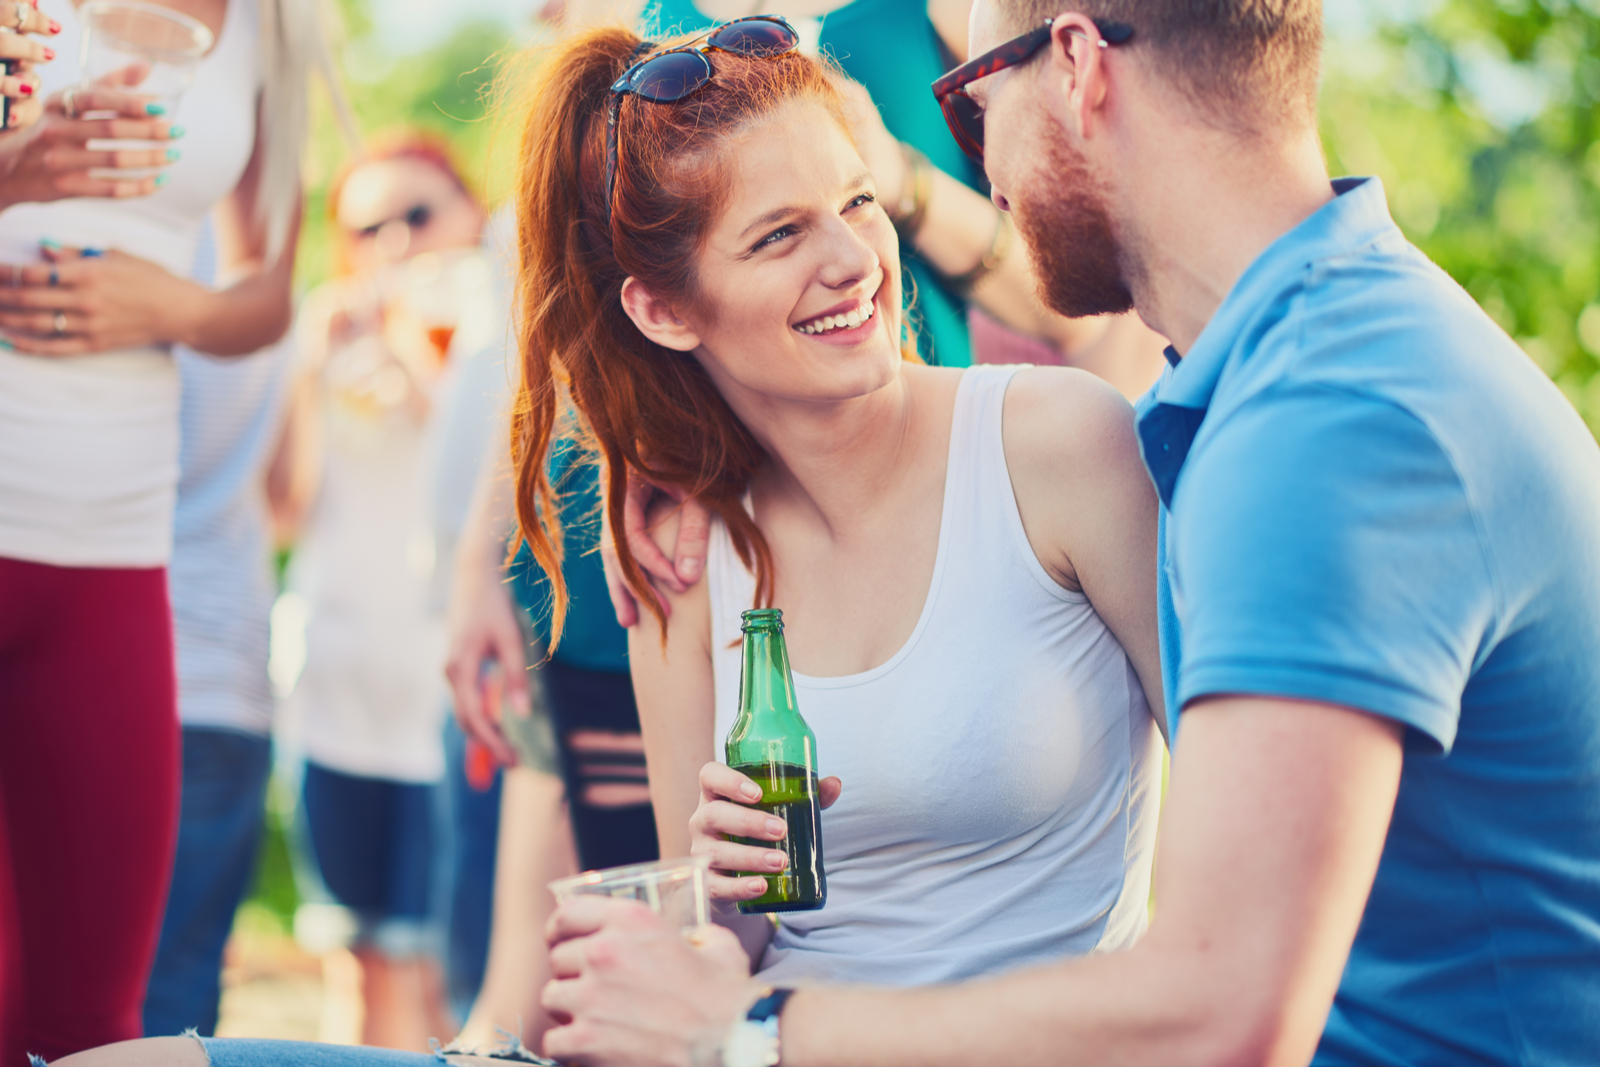 a smiling woman holds a beer in her hand and talks to a man